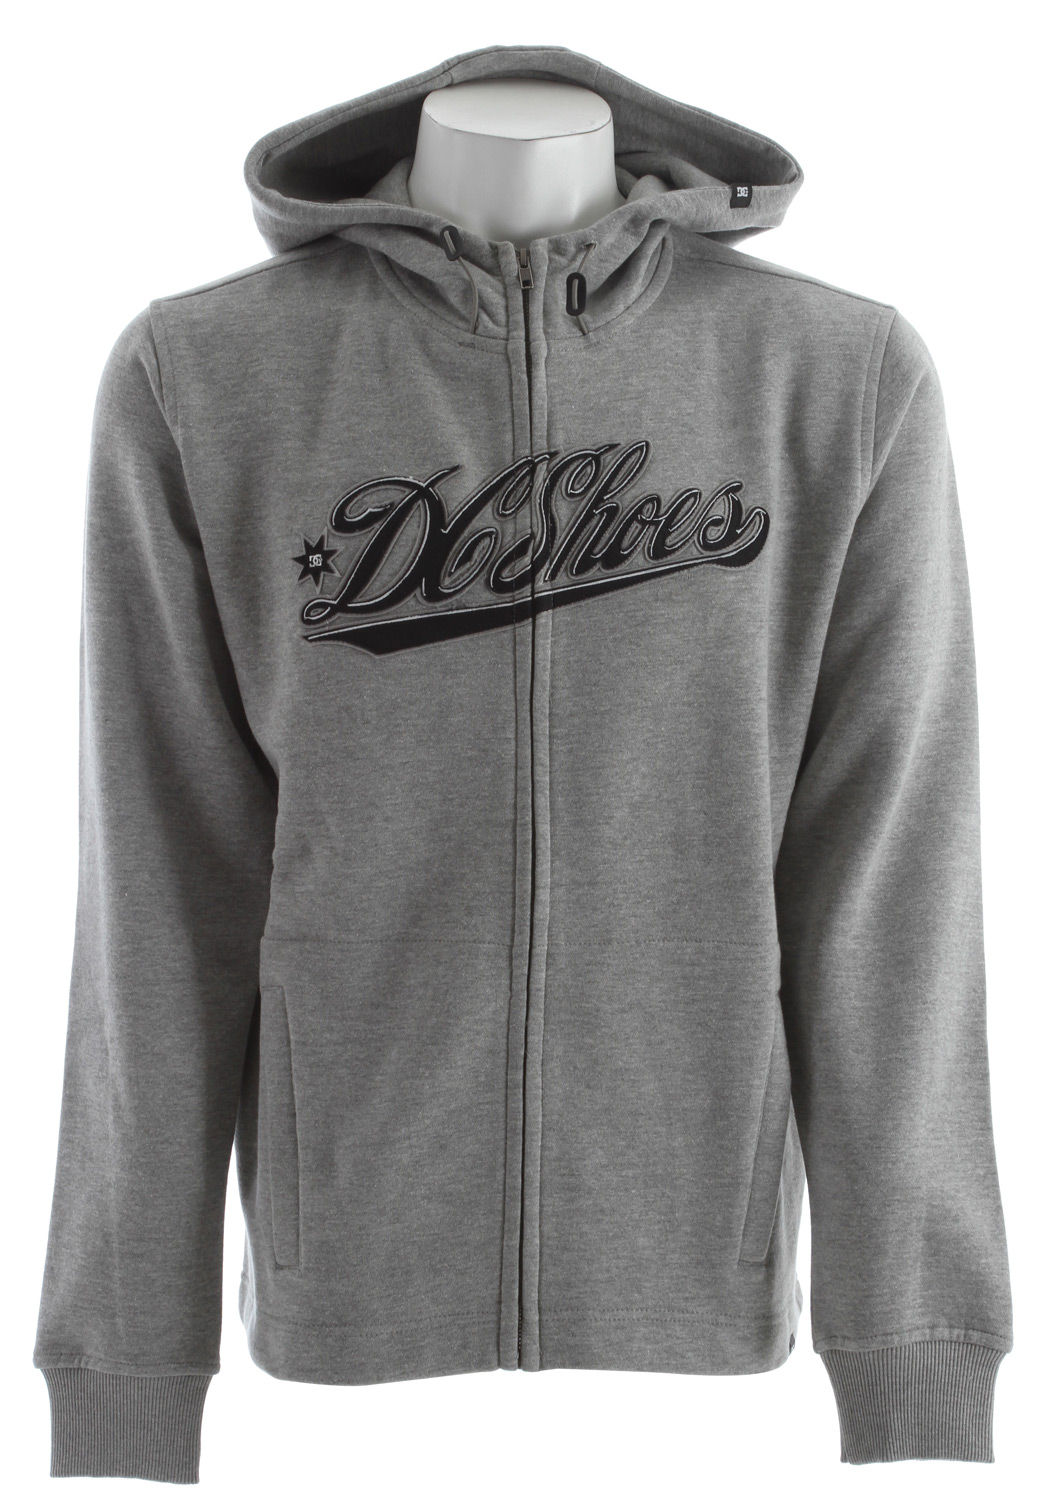 Skateboard DC's Riders fleece zipup hoodie will make you want to clean up your late model sedan and join a car club.  Fleece   Logo, Graphic    Hooded   Full Zip   Regular Fit   2 Exterior Front Pockets   Midweight Insulation - $23.95